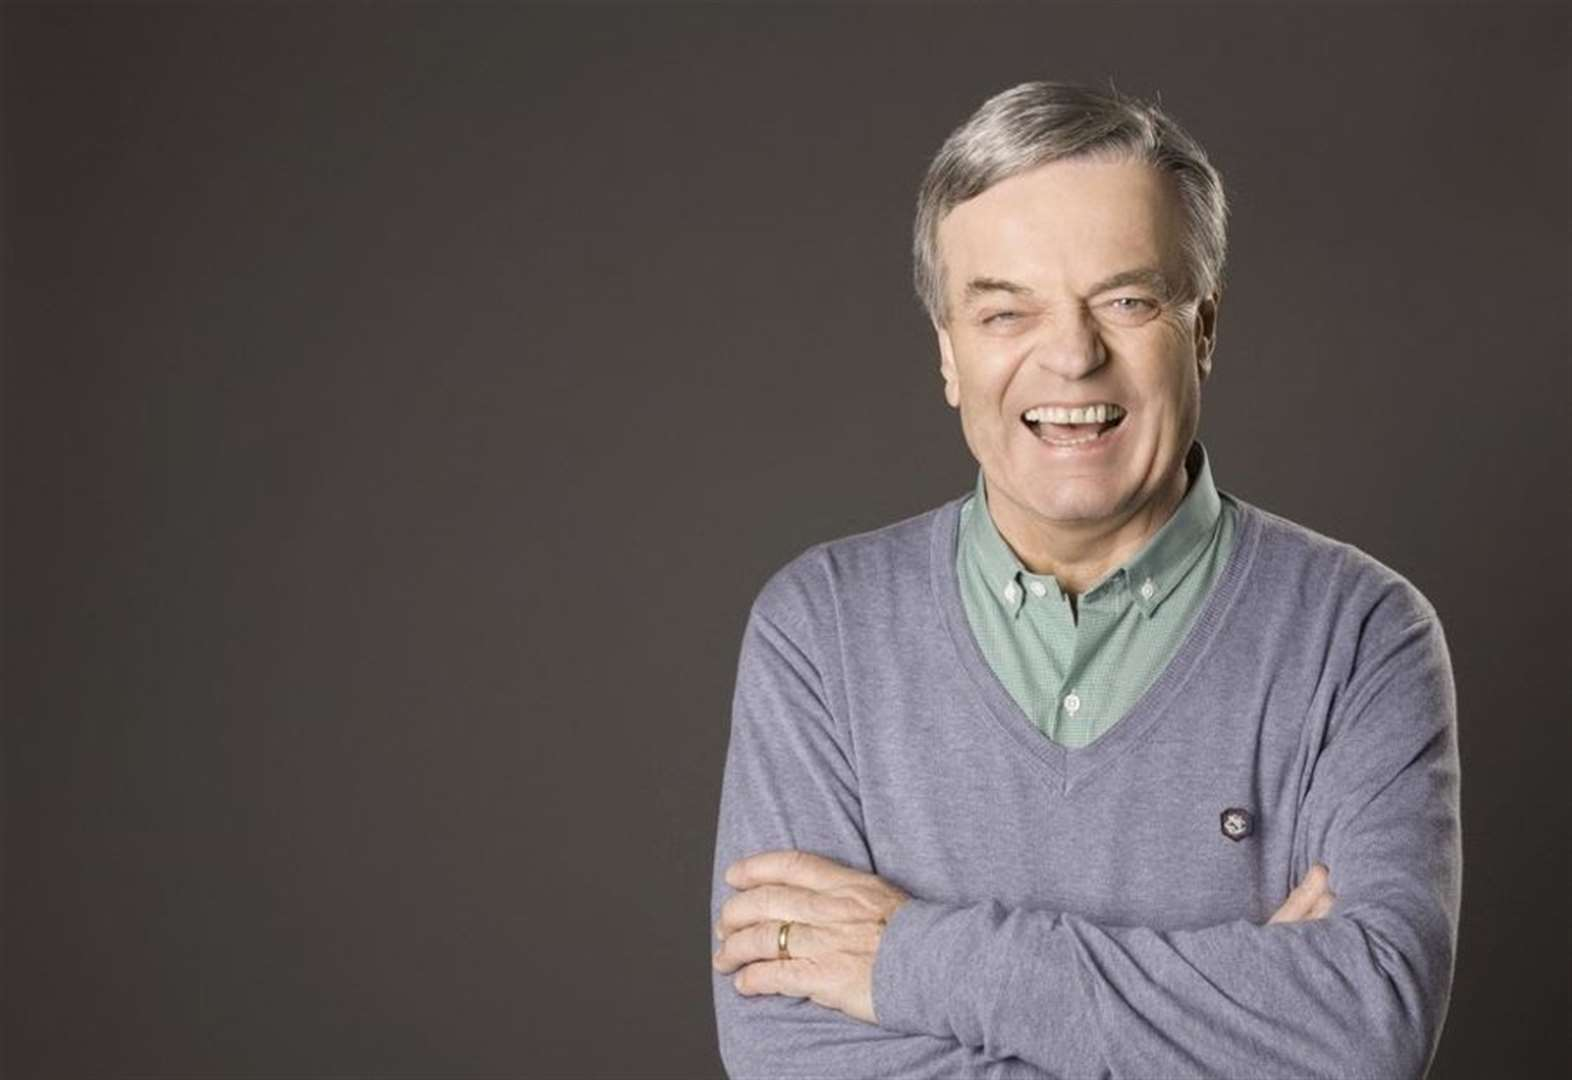 Tony Blackburn takes his show on the road